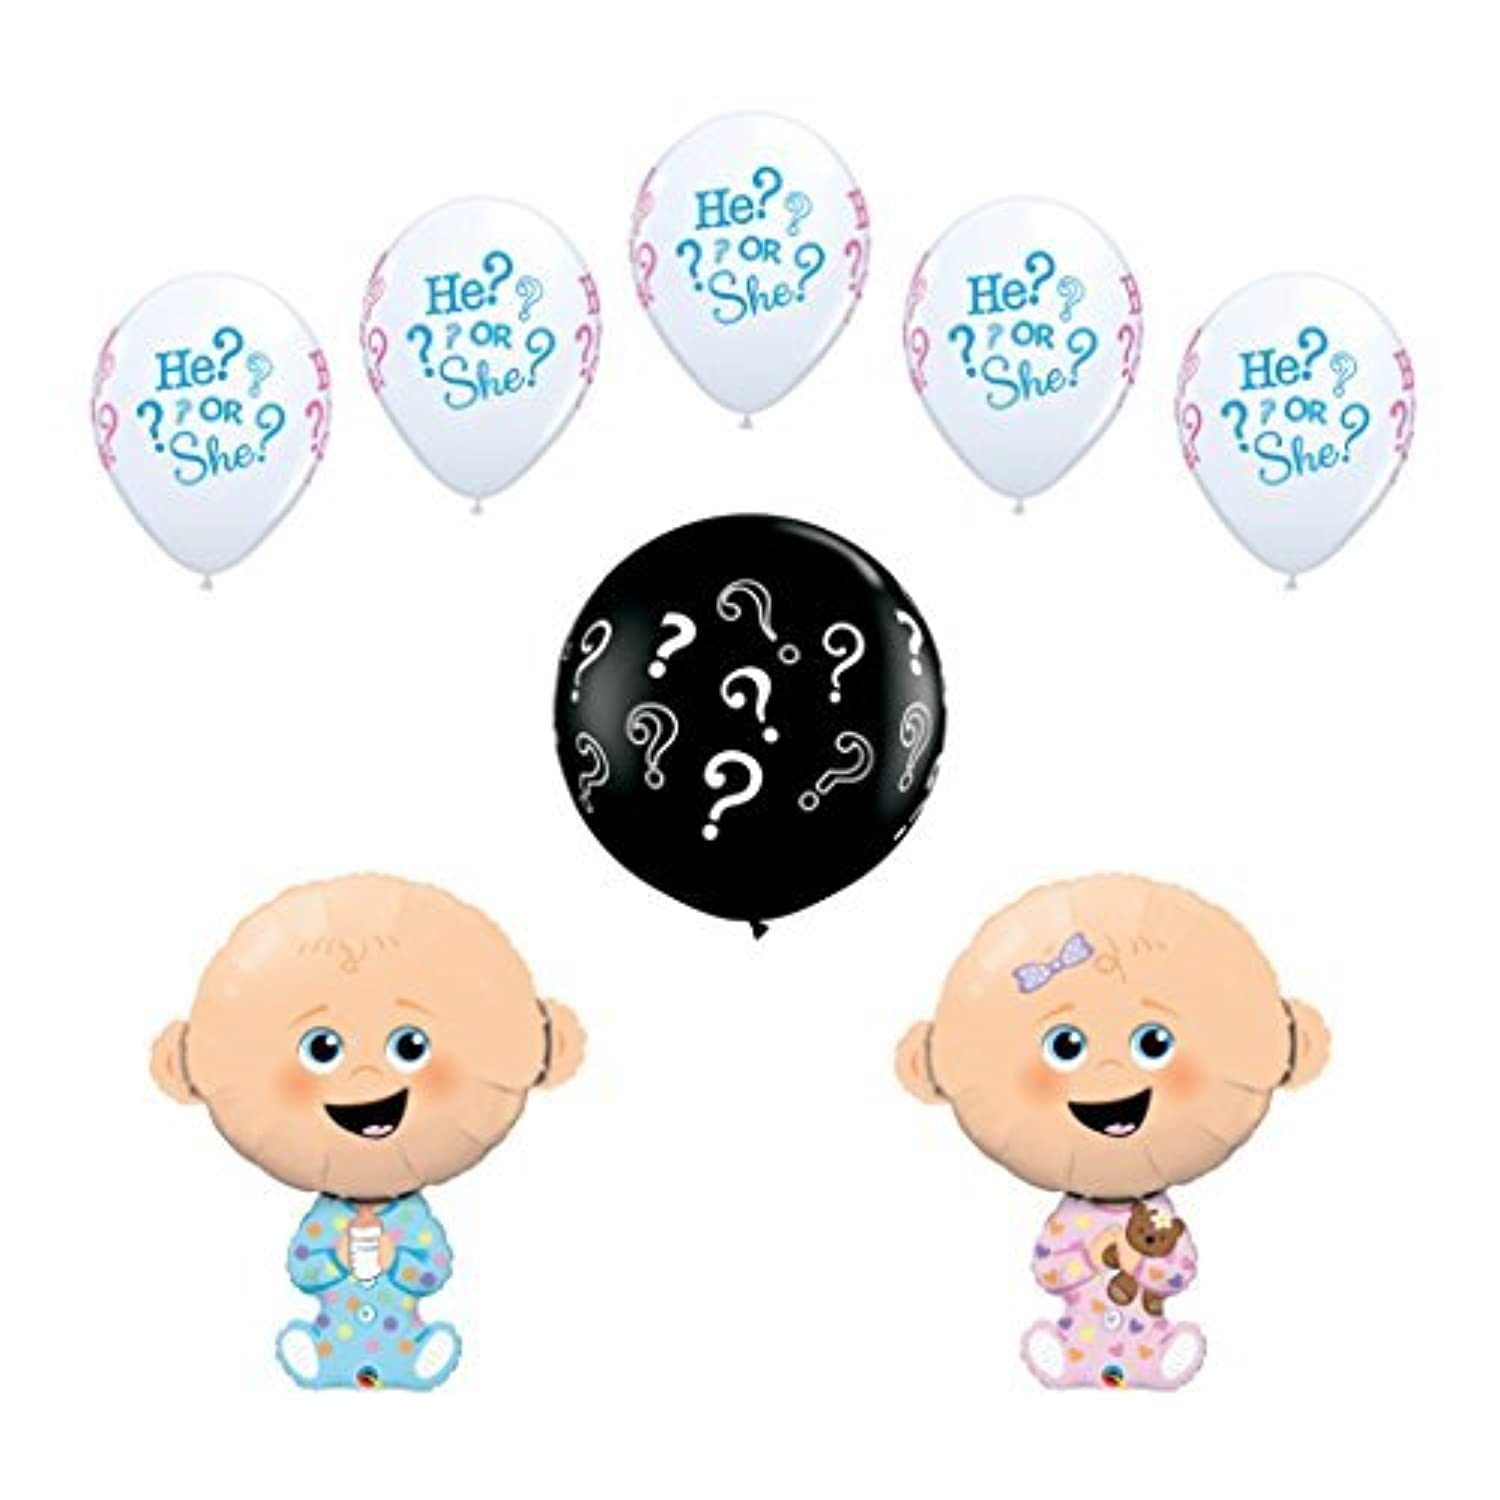 8 pc Gender Reveal Party Baby Shower Balloon Decoration Kit includes a 36 Inch Black ? Latex Reveal Balloon by Qualatex